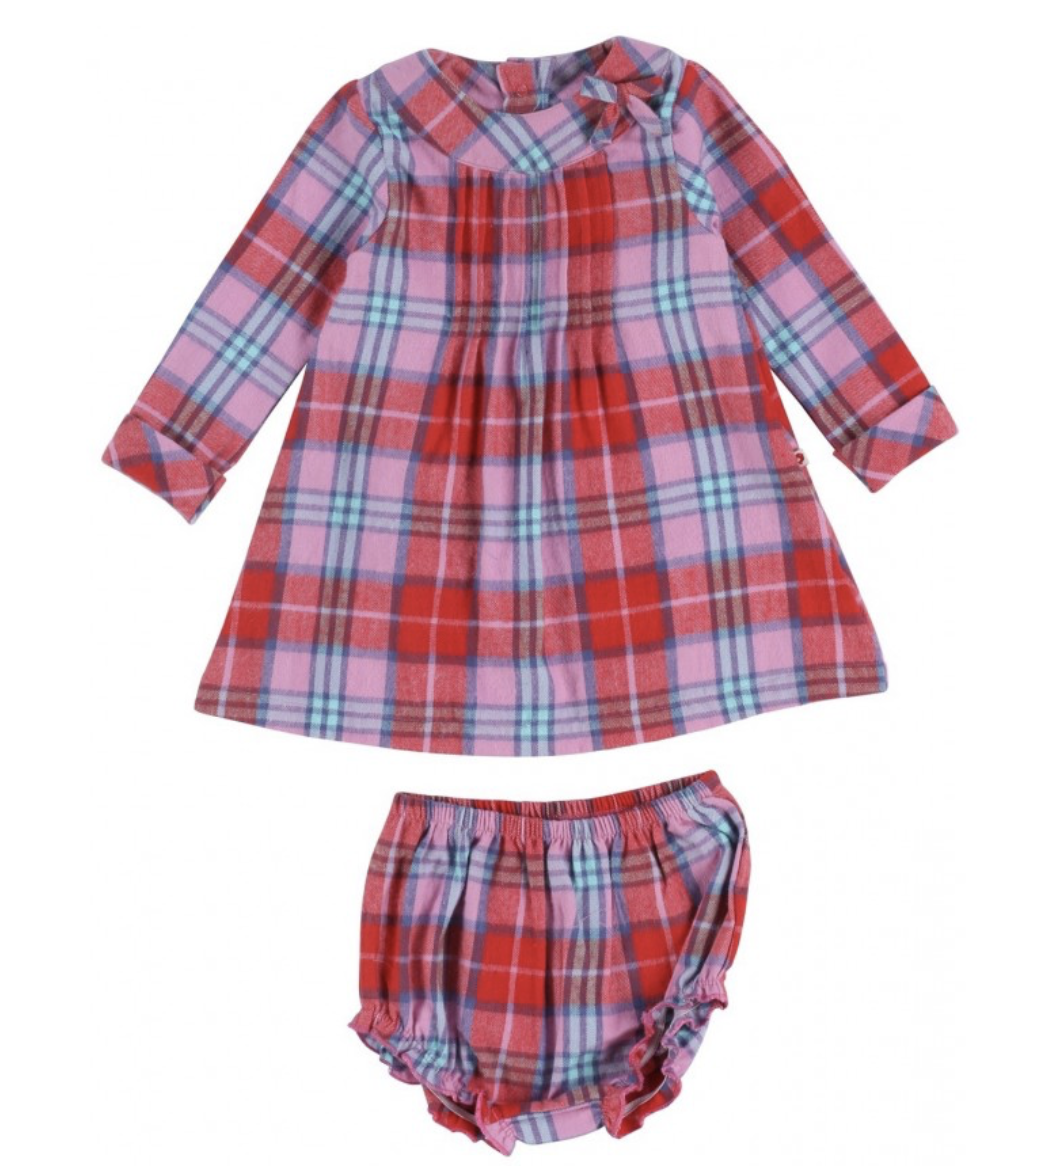 5e739f73d Tartan Check Baby Dress Set